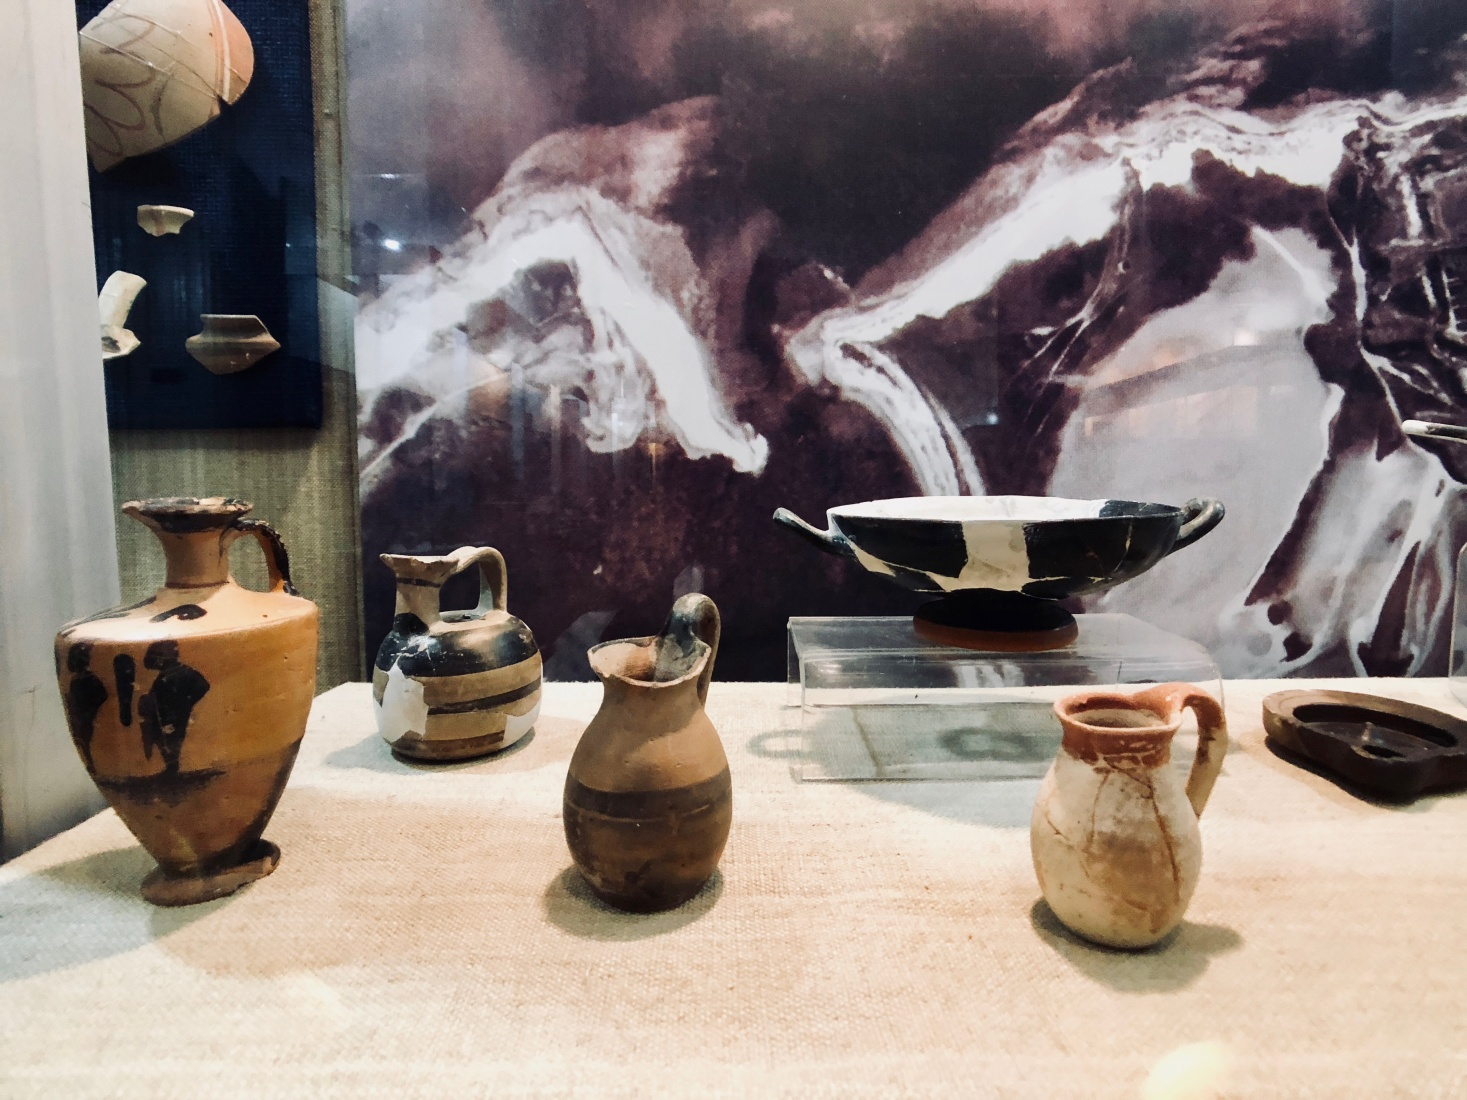 Ancient Greek vases and vessels in the Museum of National History and Archaeology in Constanța, Romania.